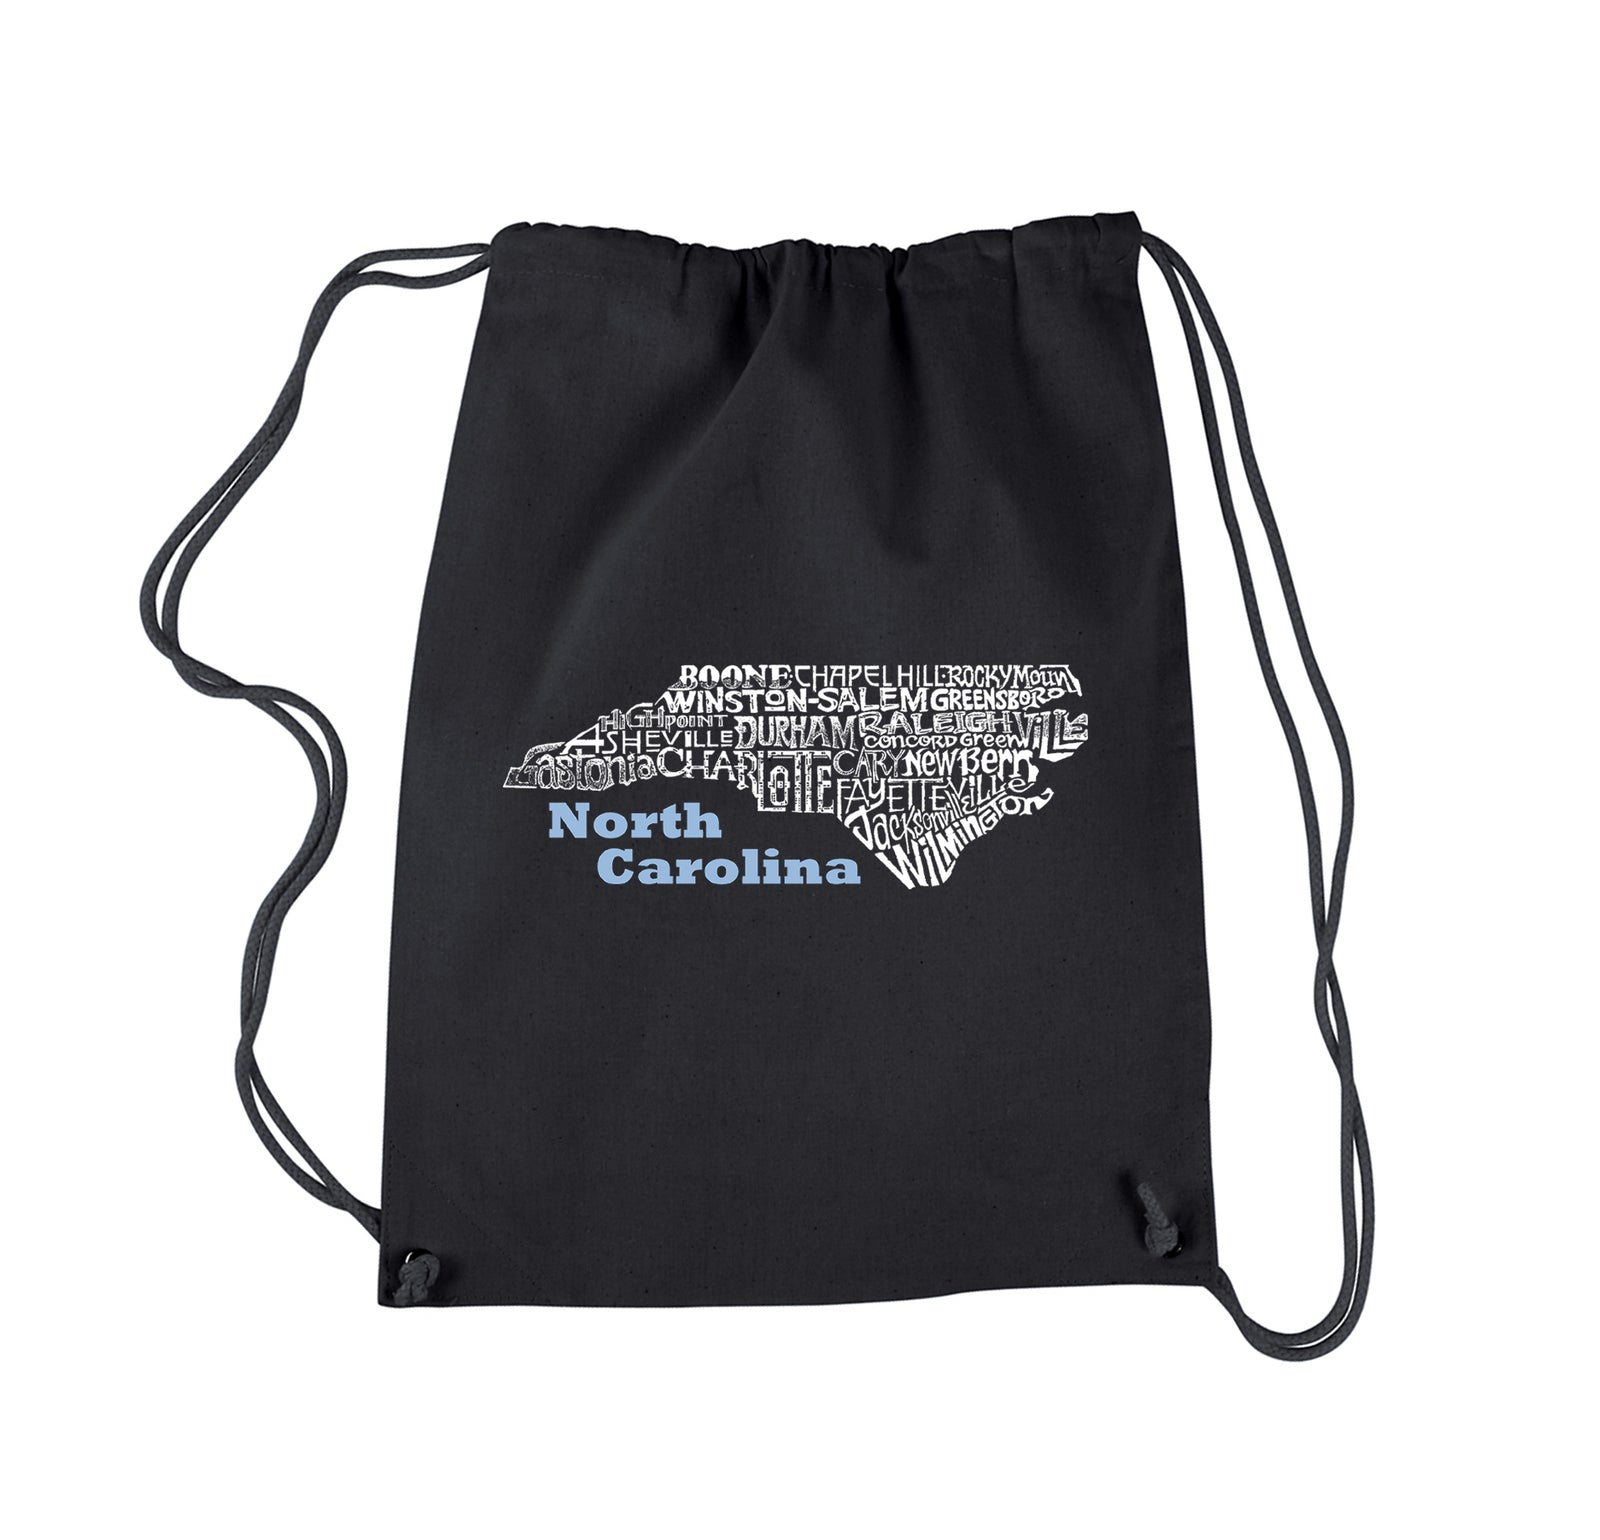 Word Art Drawstring Backpack - North Carolina